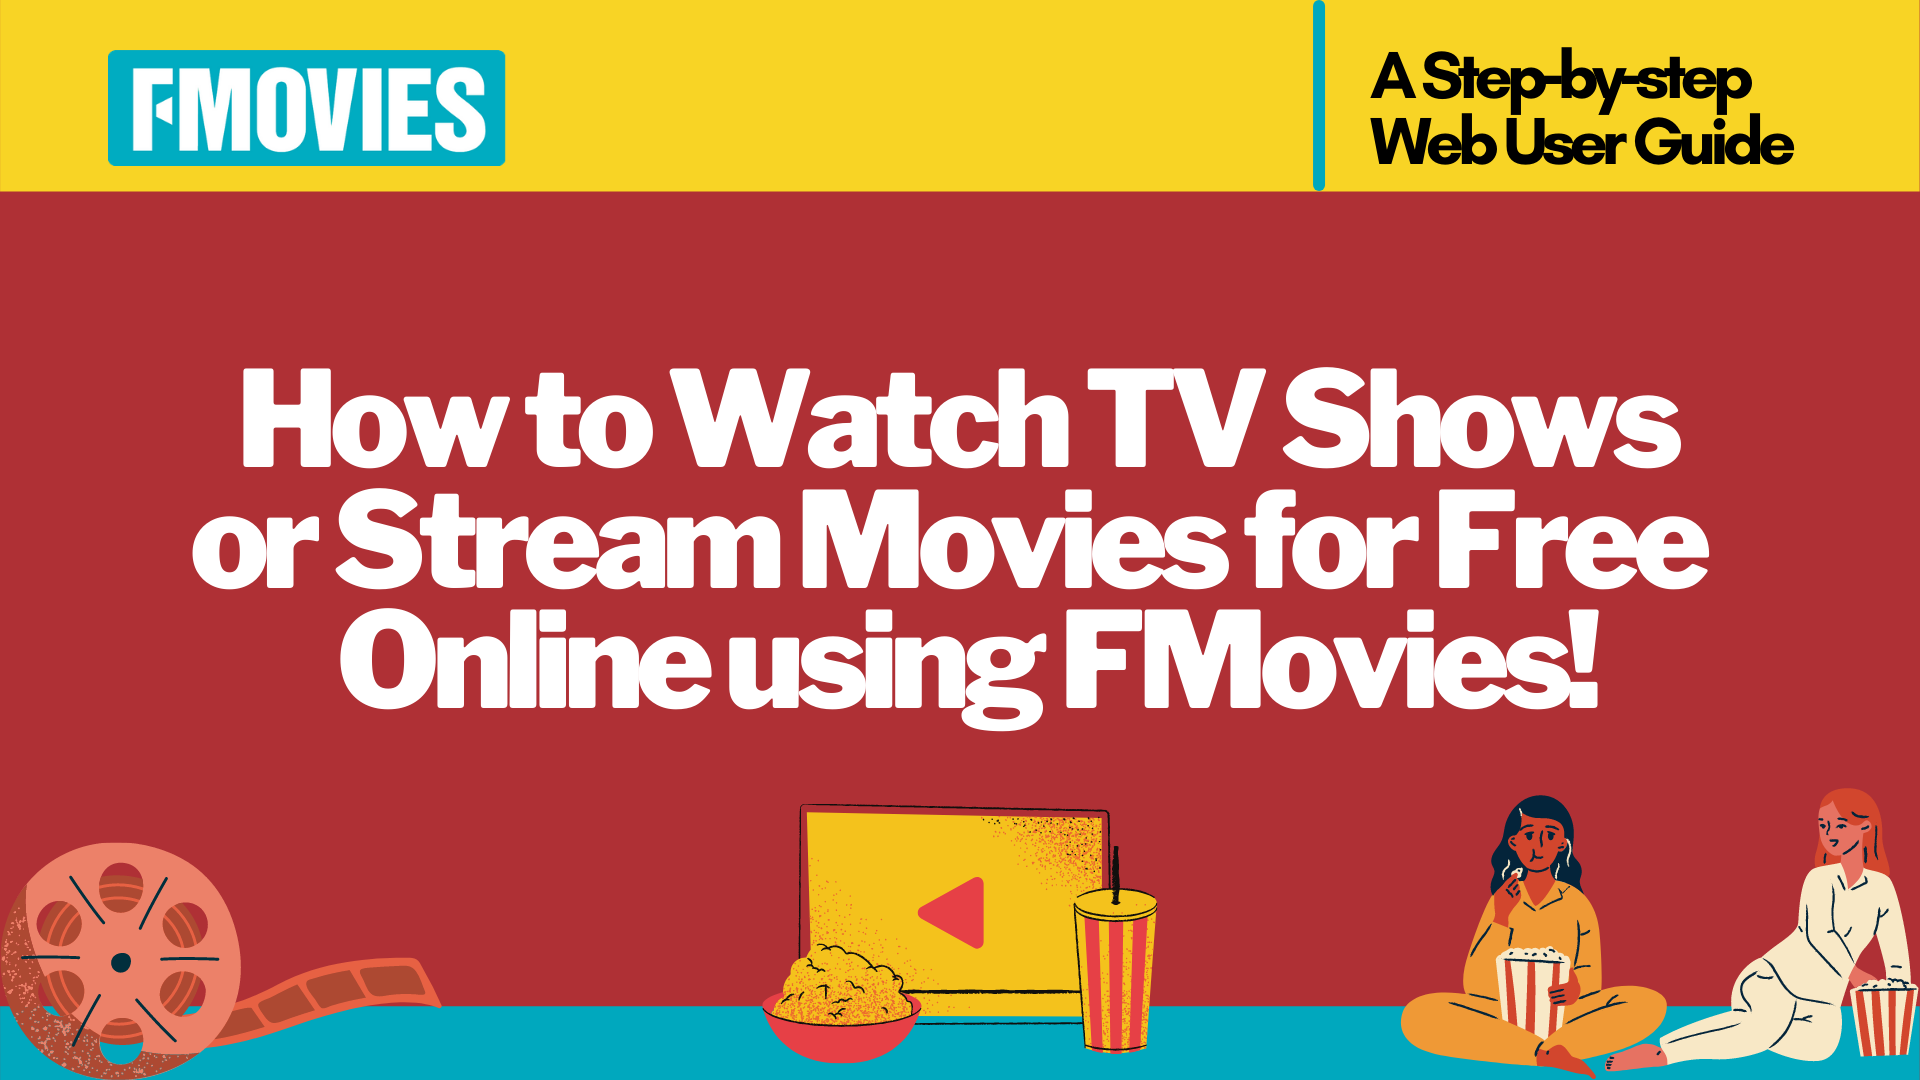 What is FMovies?